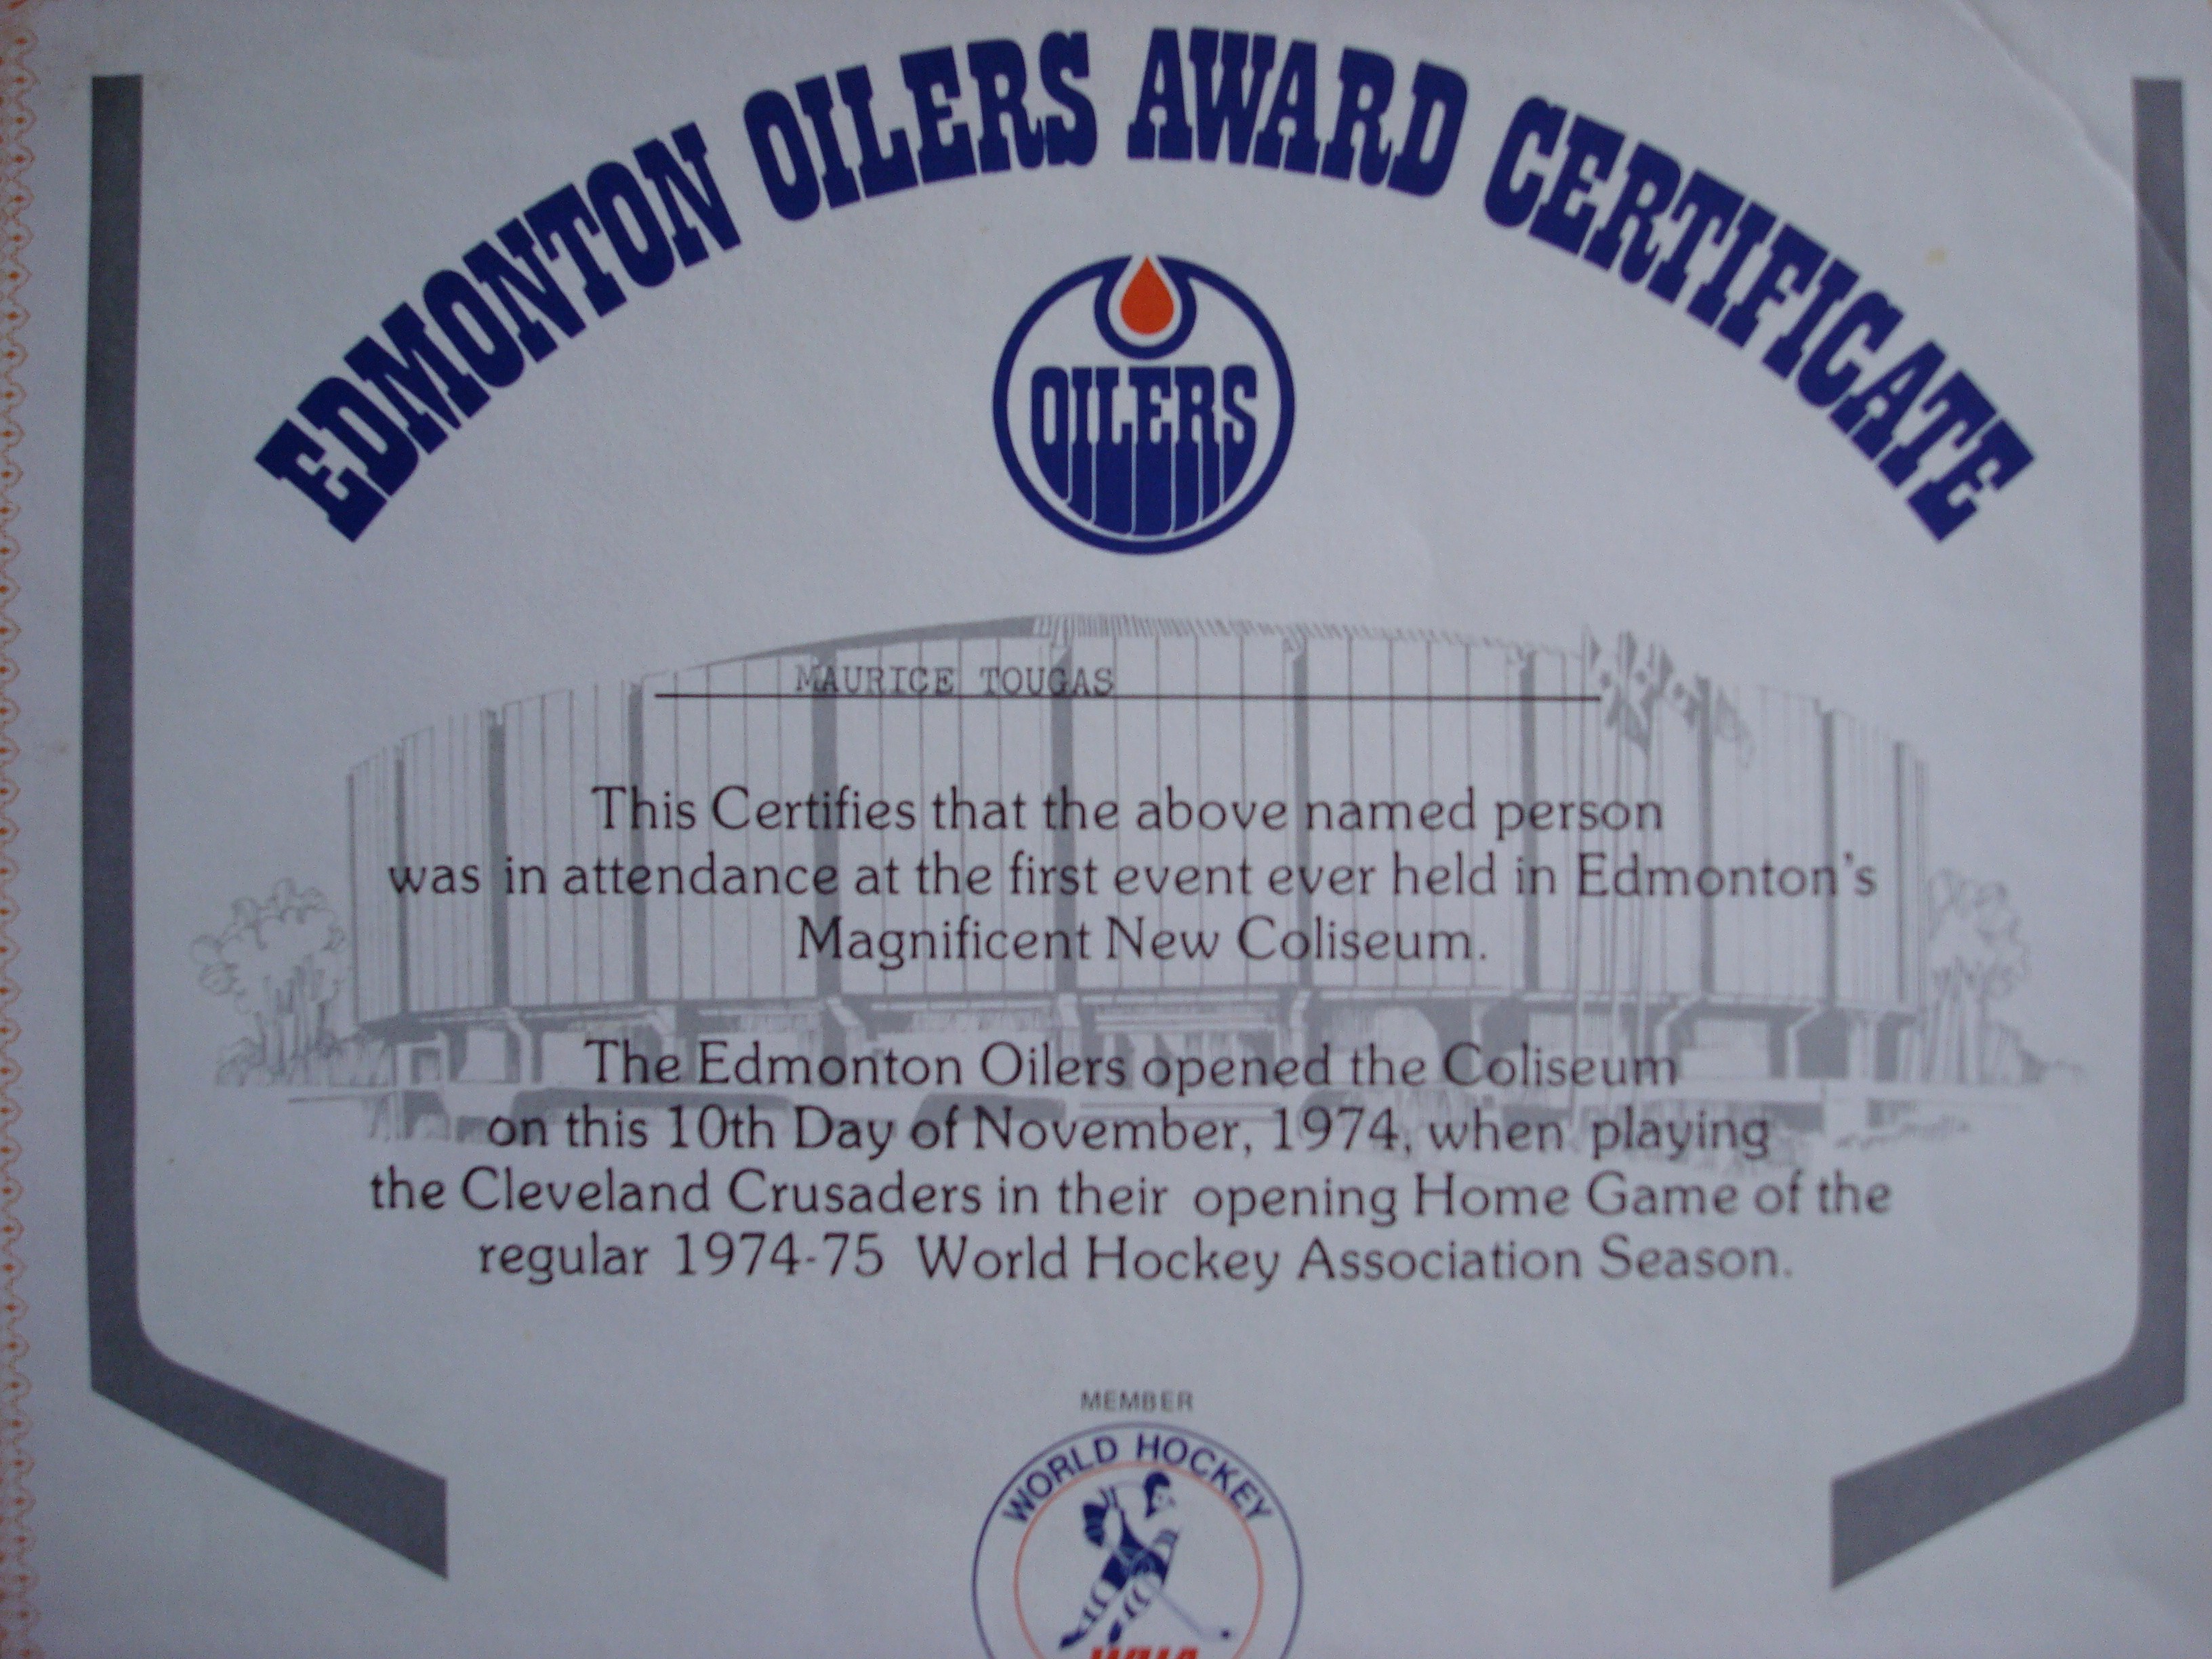 Player Of the Game Certificate Unique 'the Magnificient New Coliseum' Turns 40 and I Was there